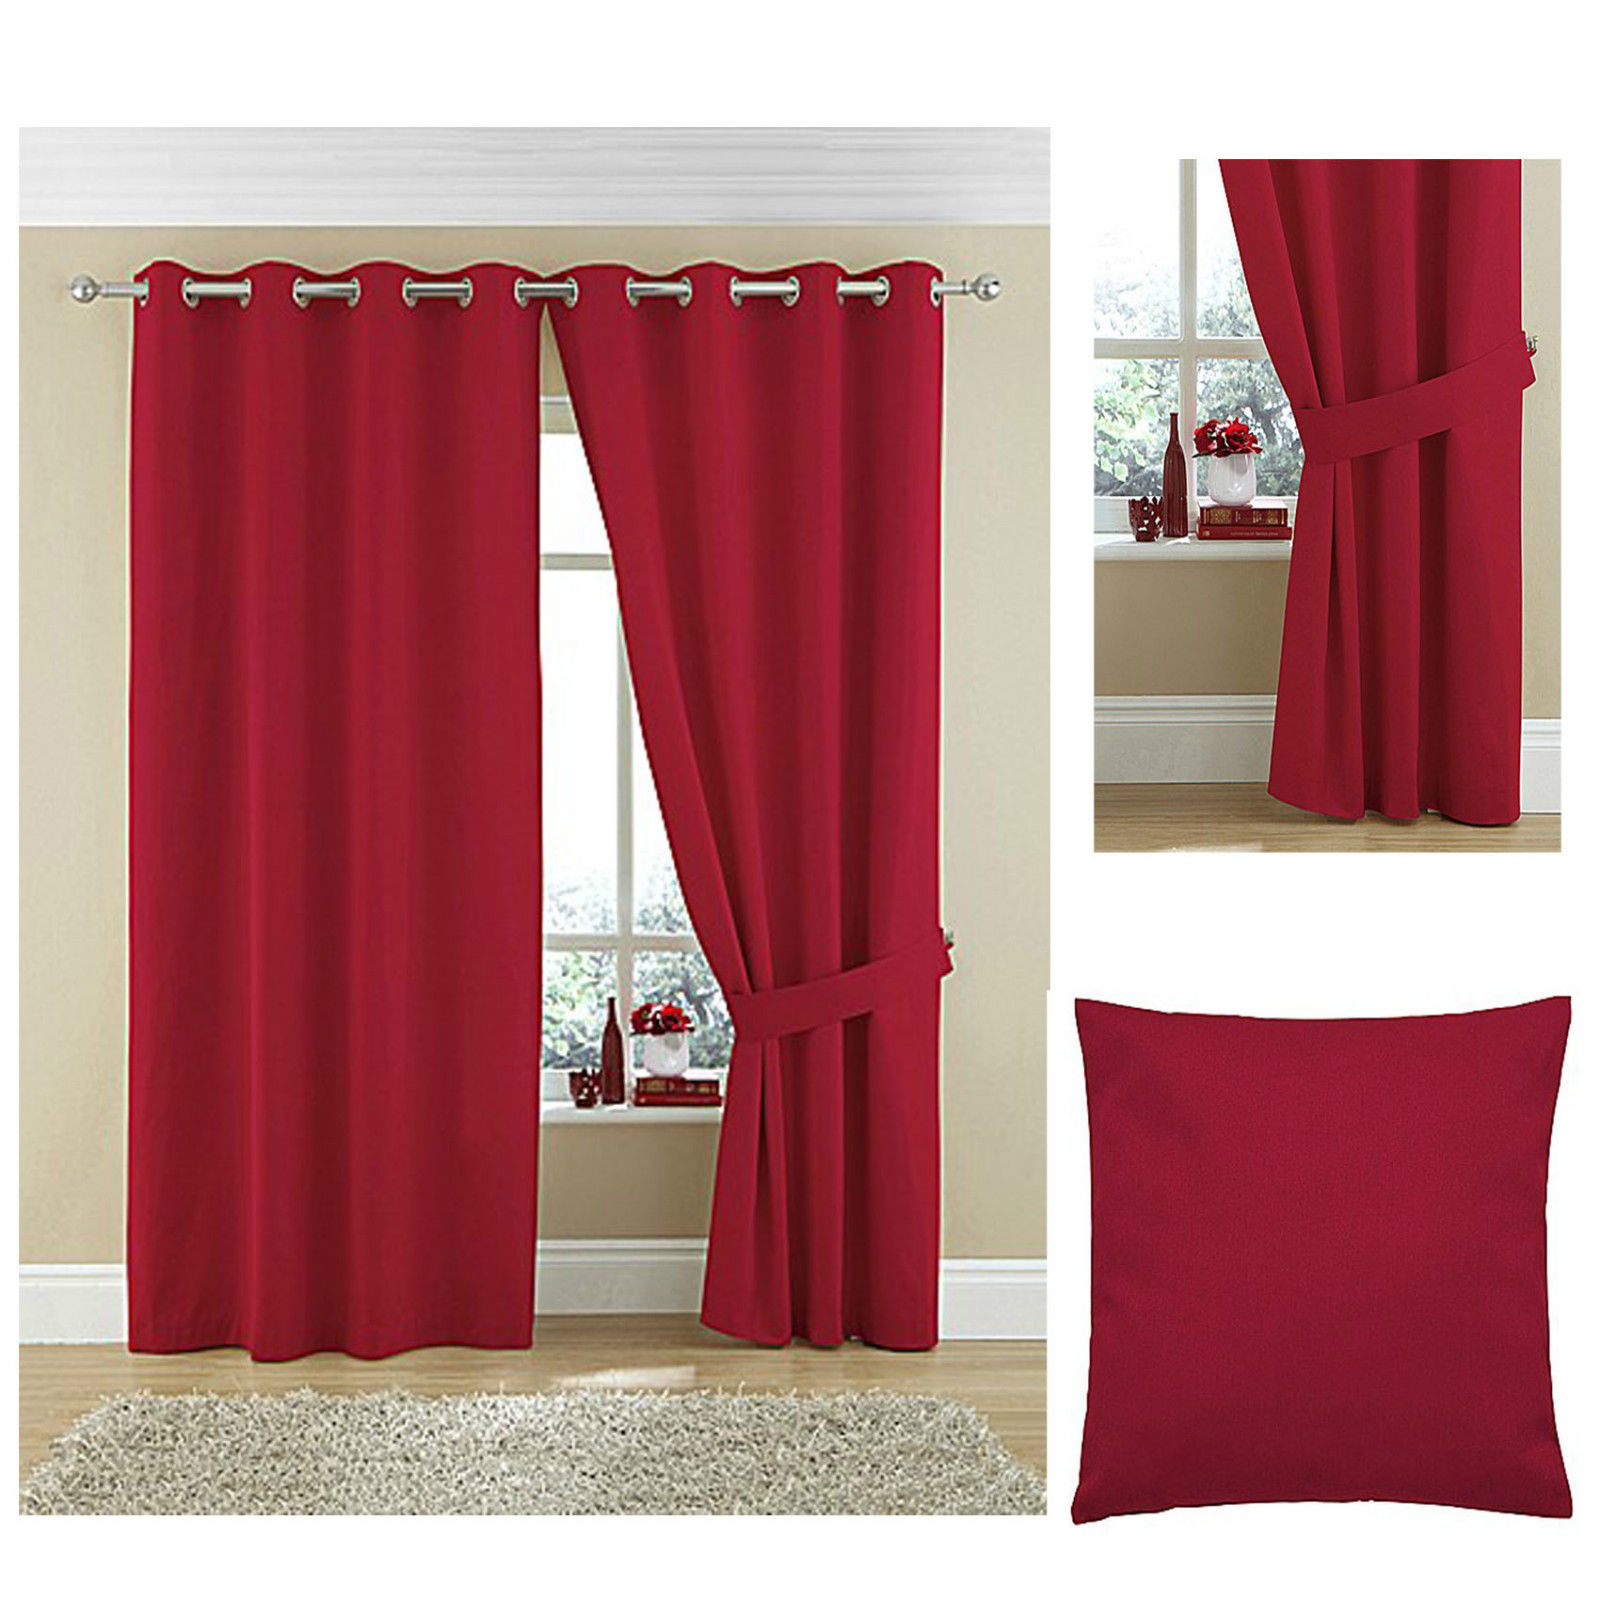 Twill Lined Ring Top Curtains 100 Cotton Plain Dyed Textured High Quality Ebay